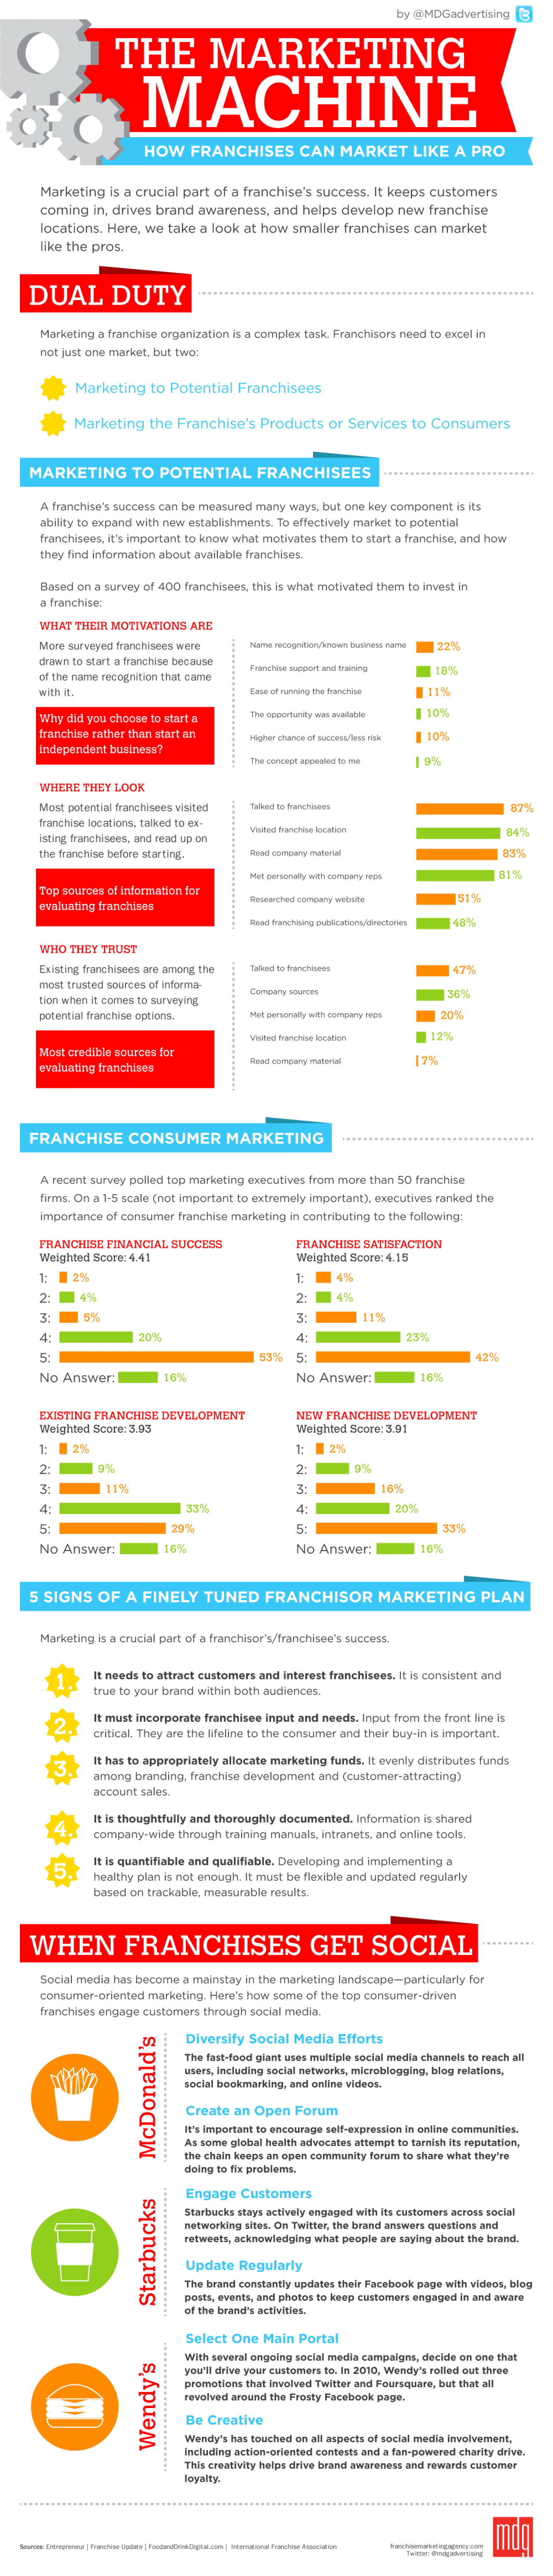 The Marketing Machine Infographic